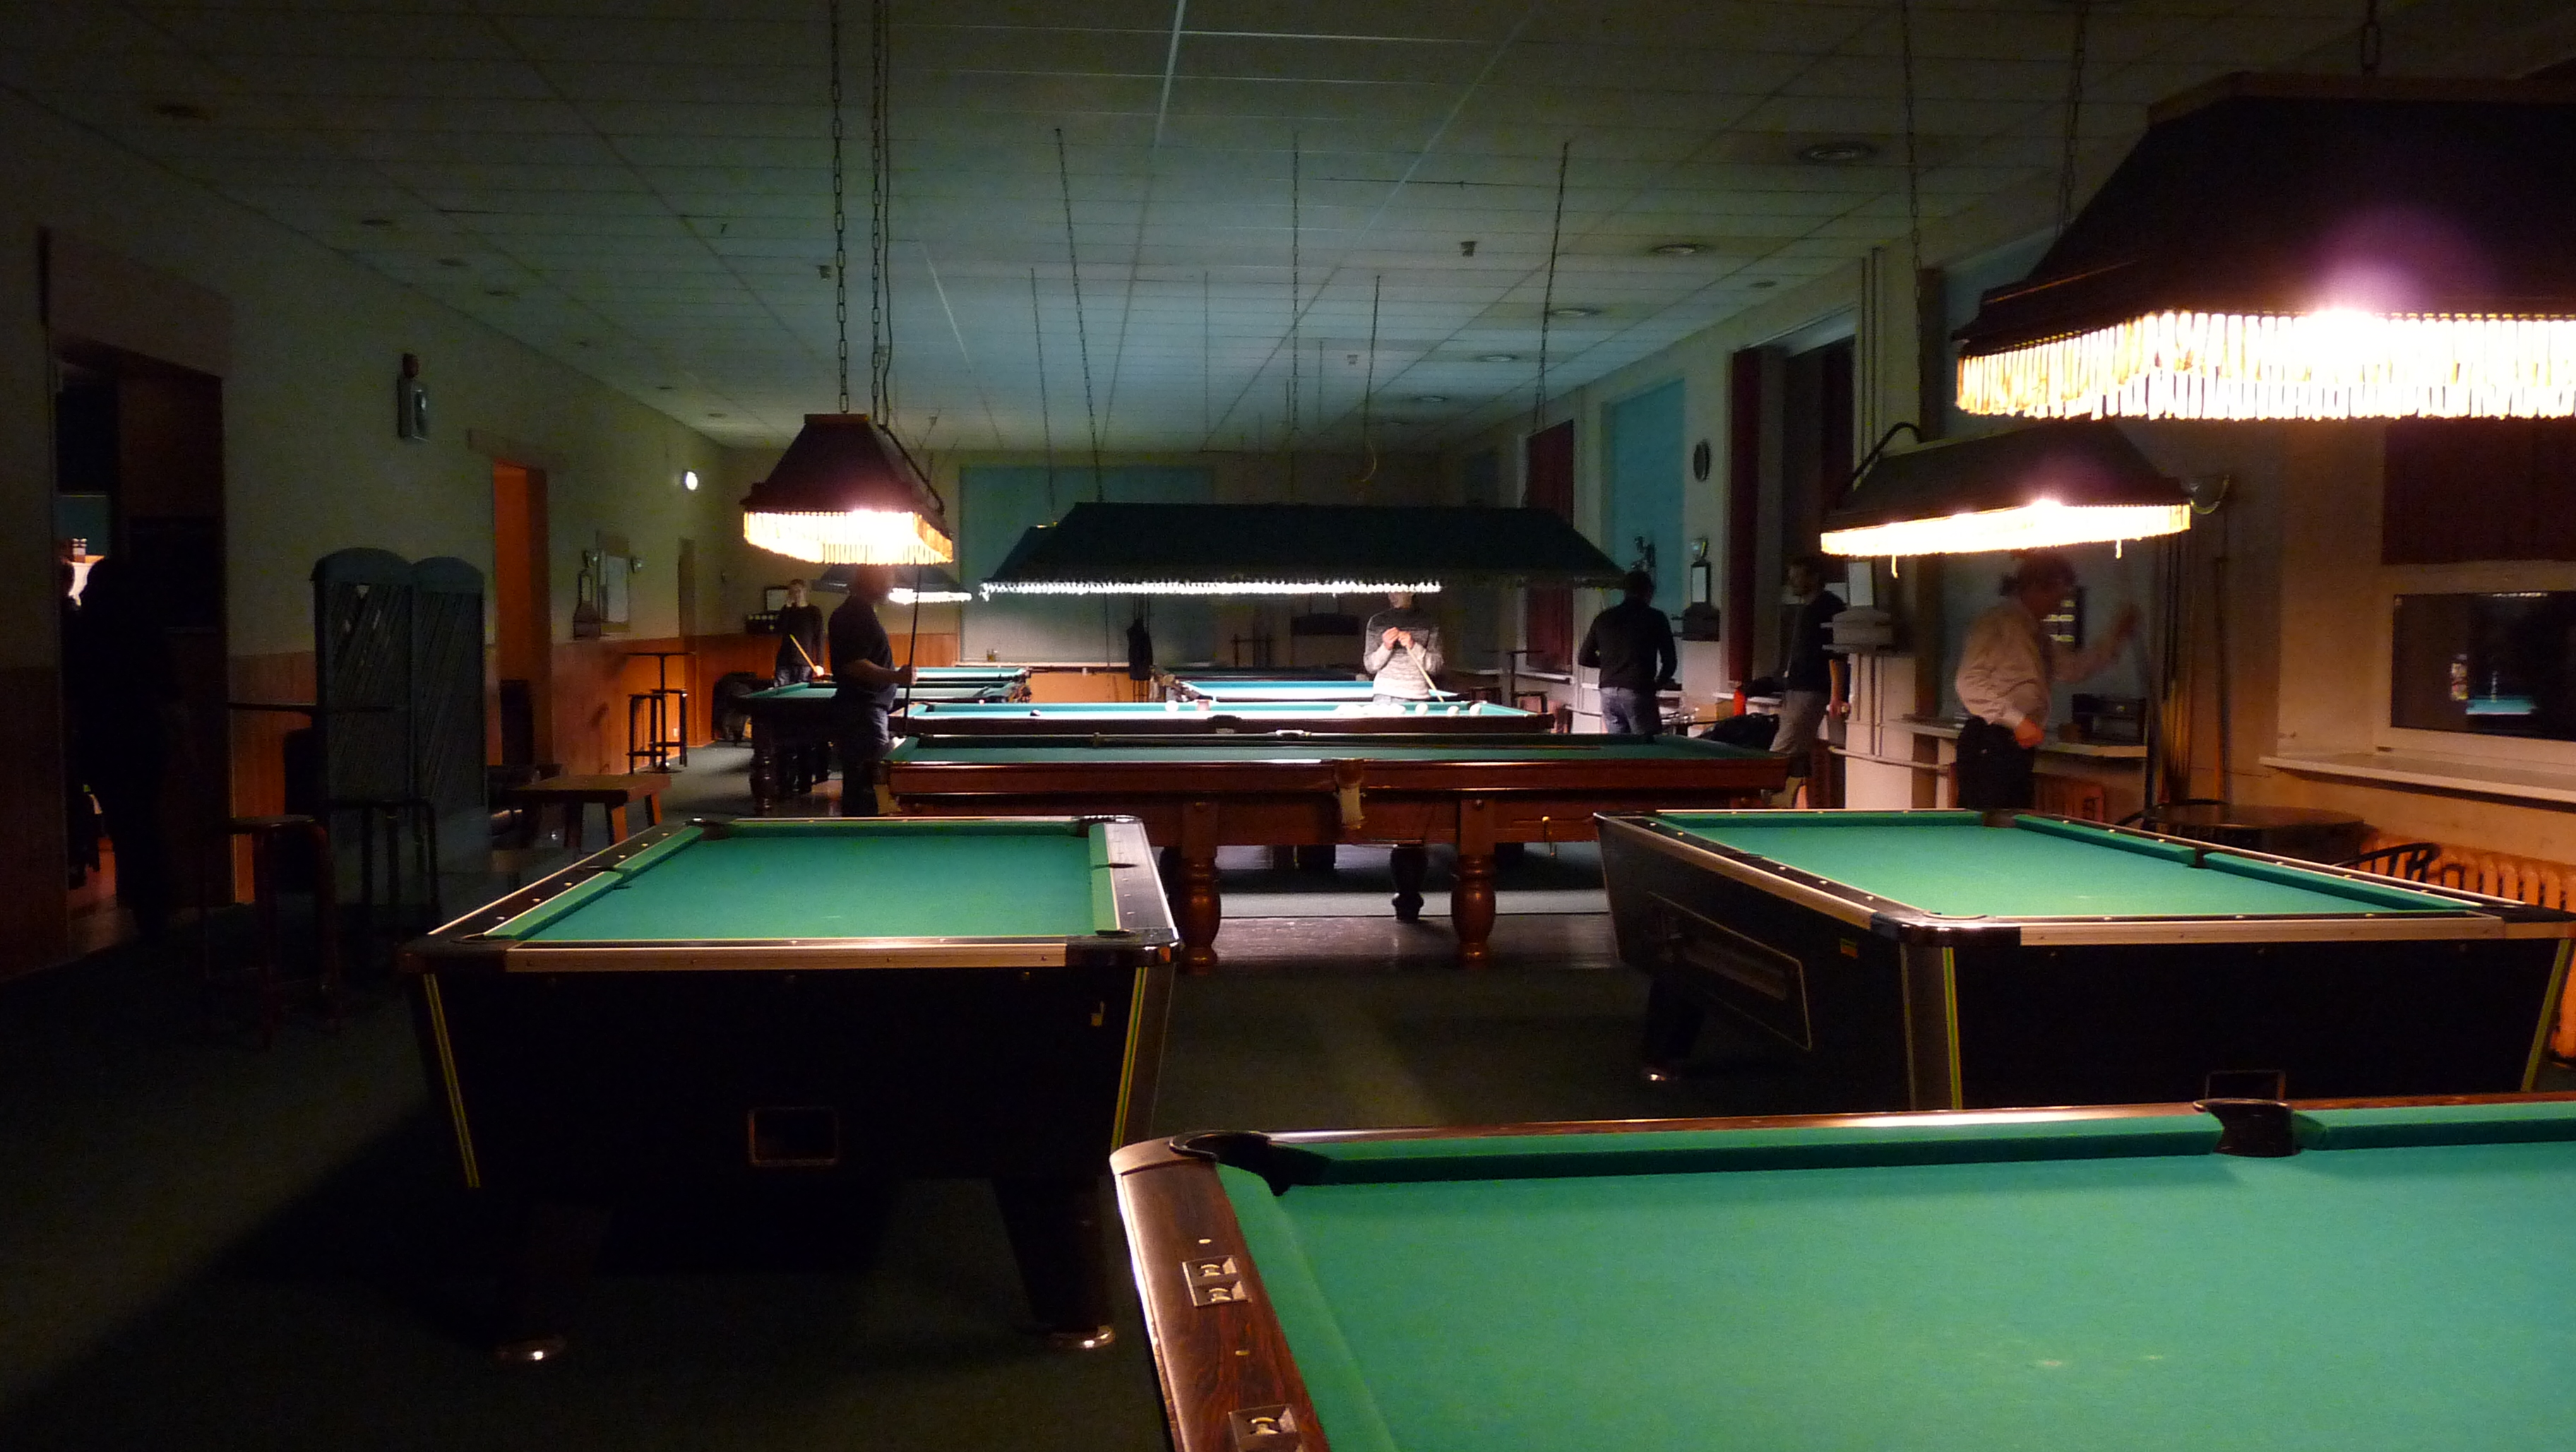 ../_images/Billiard_hall.JPG